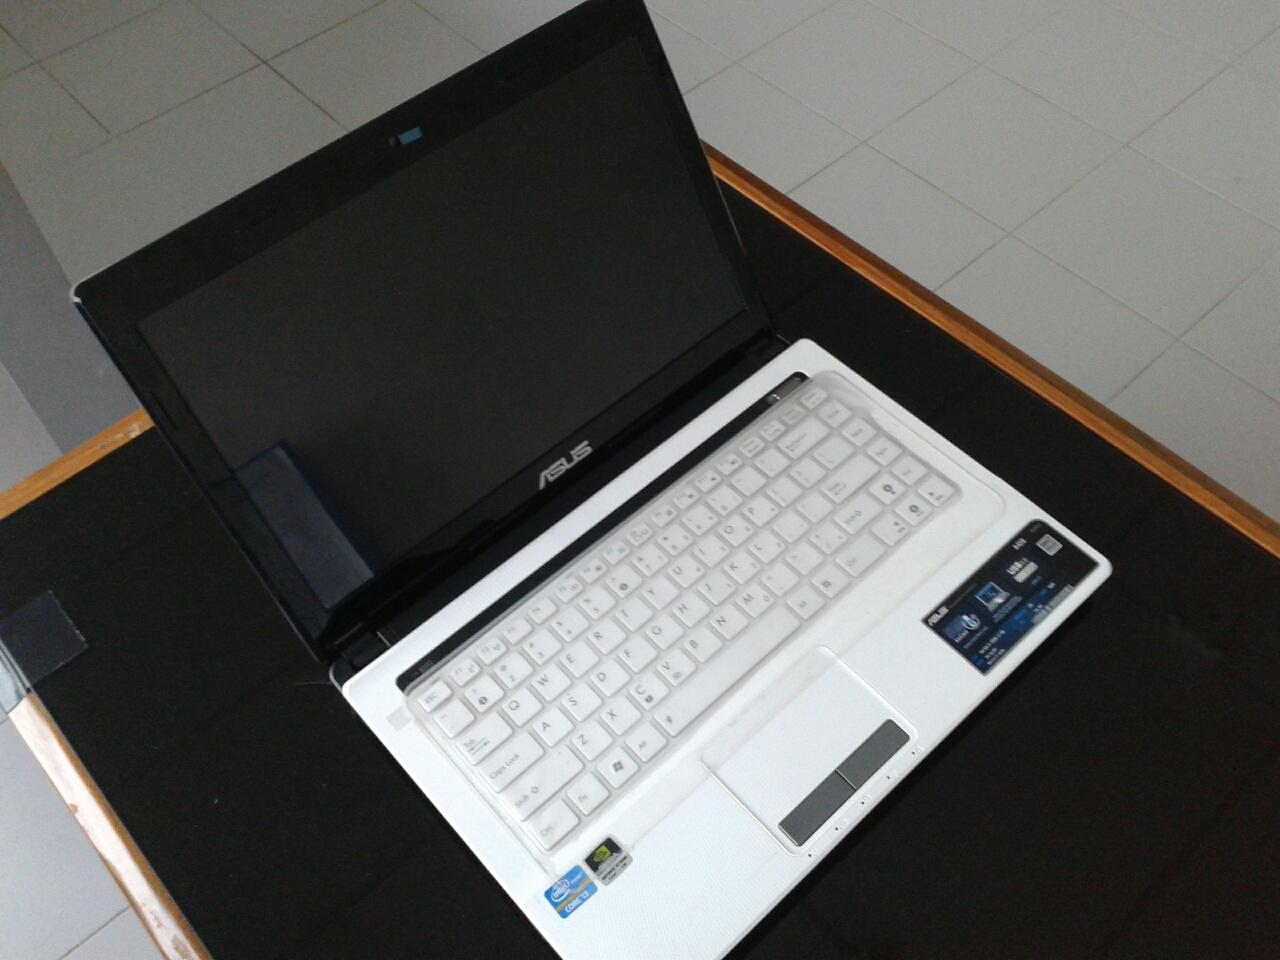 Laptop Asus A43s White Core I5